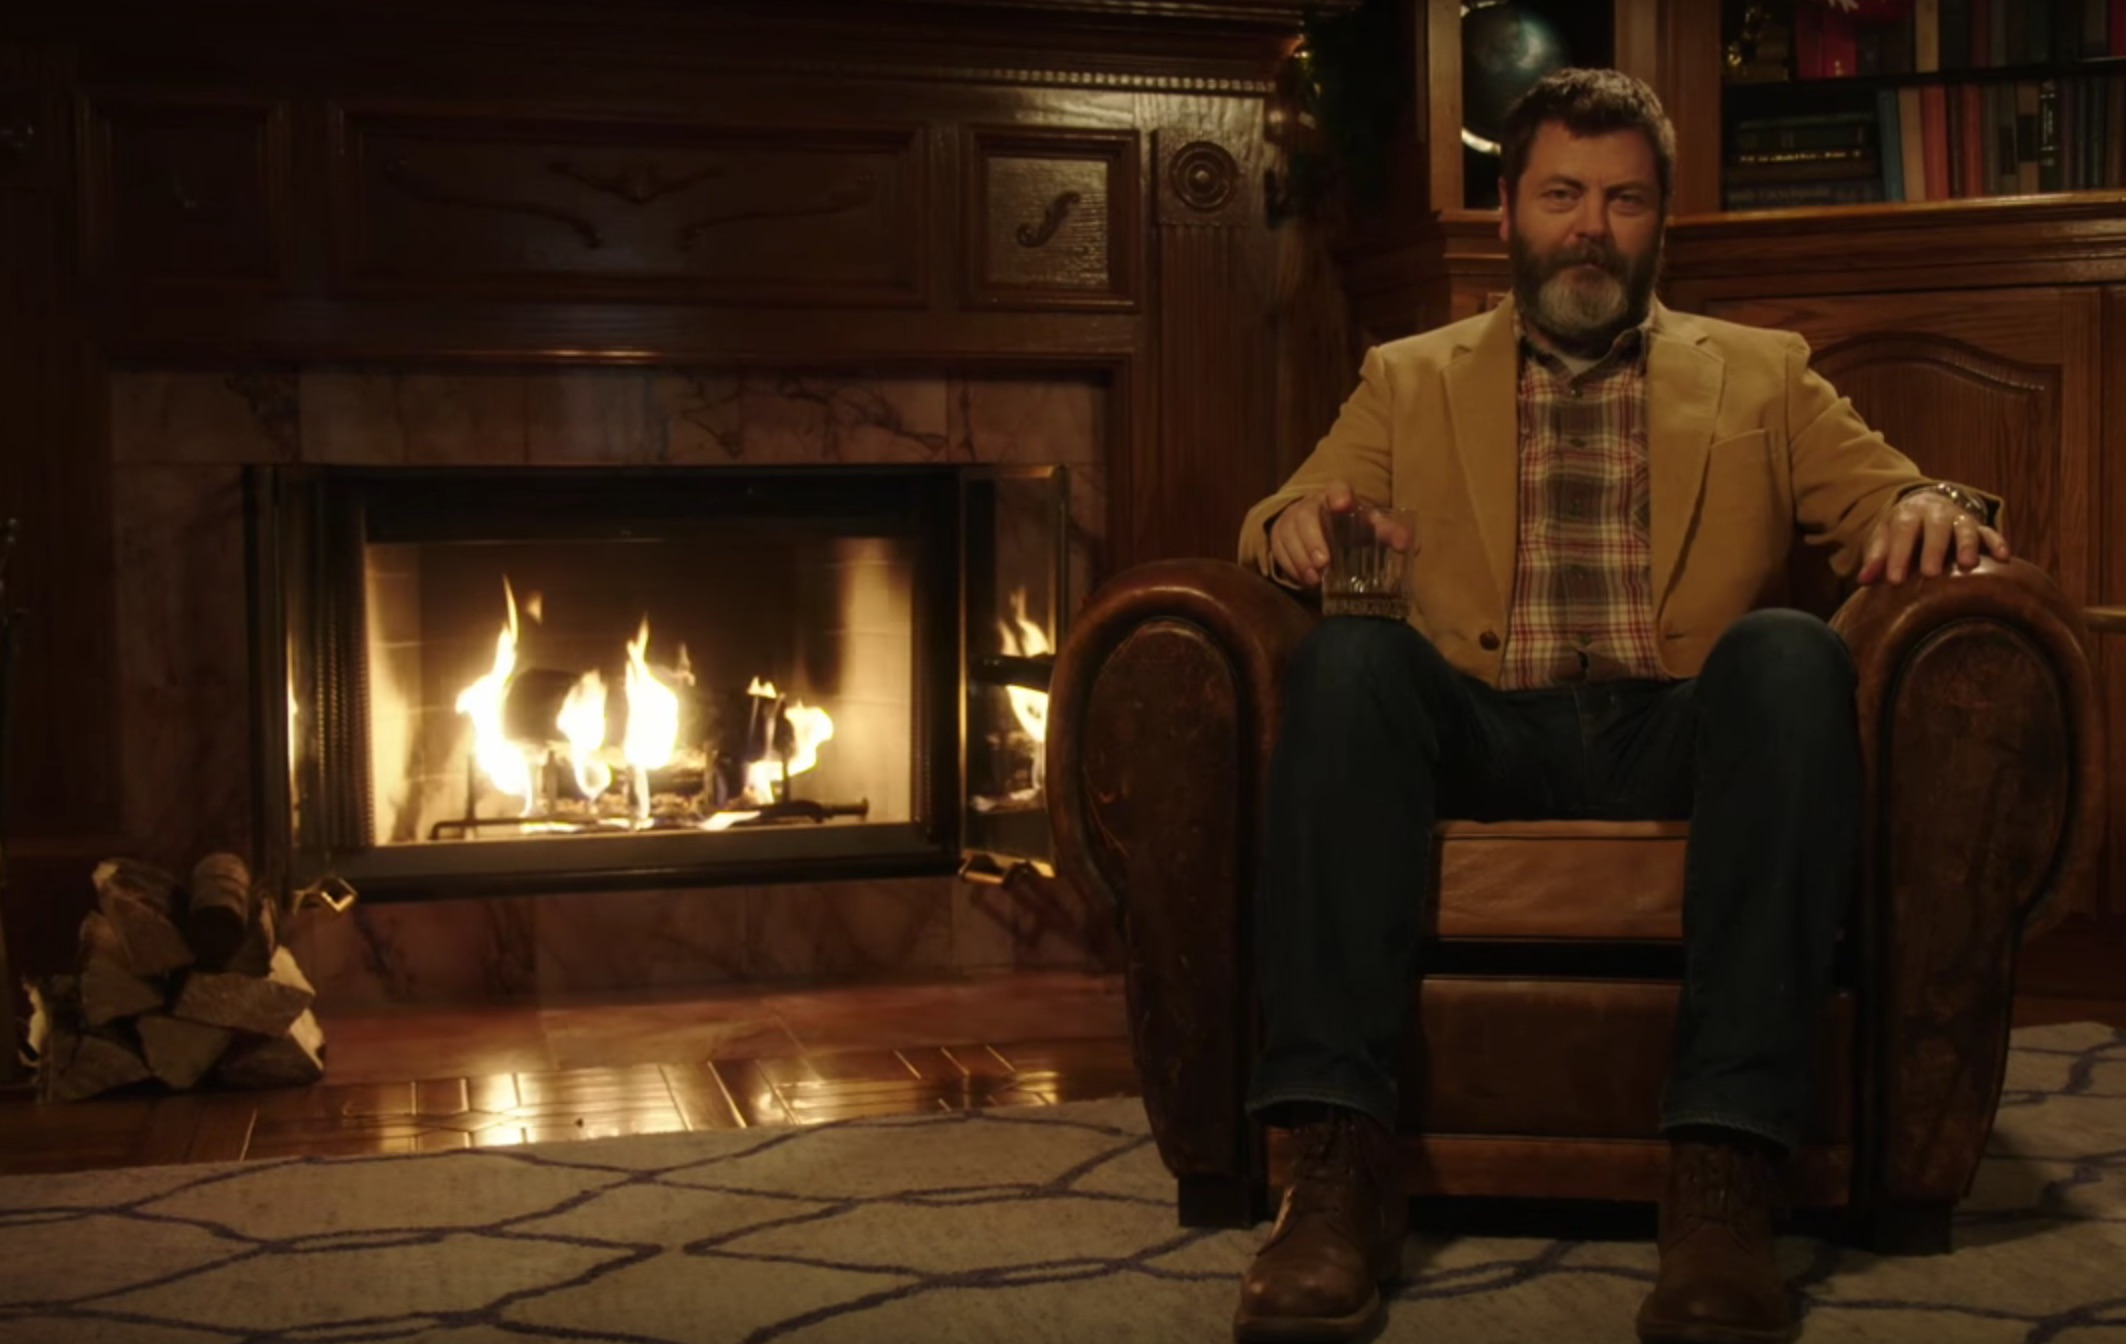 And now, a 45-minute video of Nick Offerman sipping whiskey by the fire